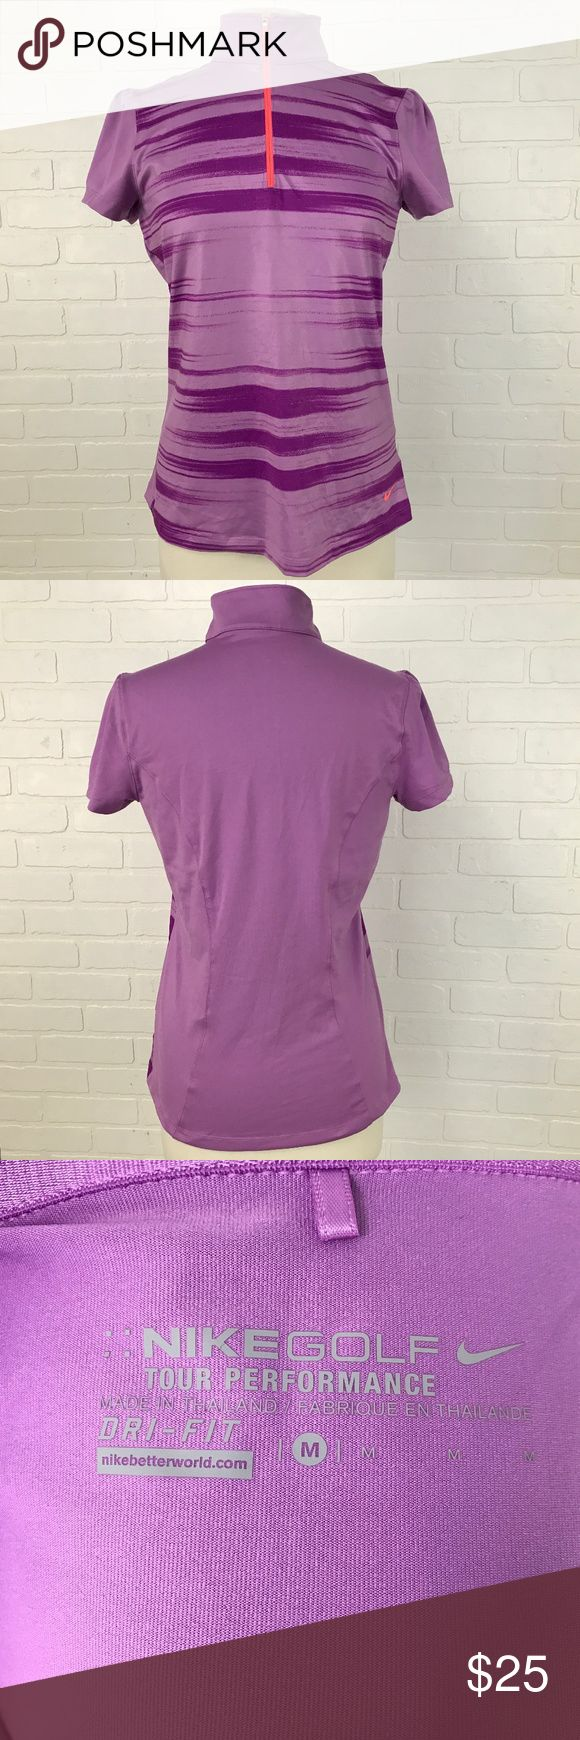 Nike Golf Dri Fit Women's Purple Shirt Top Neon BRAND                    :Nike		 SIZE	                 :Women's Medium		 STYLE	                 :Shirt - three quarter Zip	 COLOR	                 :Purple MATERIAL              :87% Polyester 13% Spandex MEASUREMENTS :Chest 18 Sleeve 6.5		 Condition               : Gently Worn	 Inventory                : MQ49 B2 Nike Tops Tees - Short Sleeve